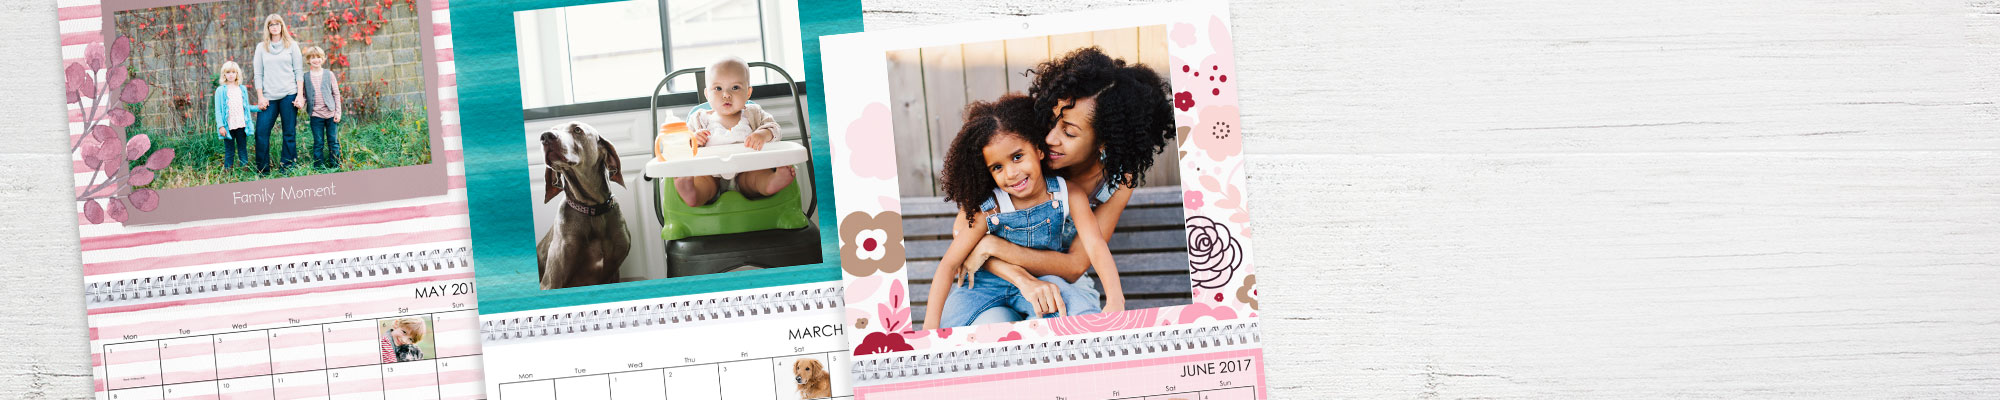 Photo calendars Enjoy 365 days of your favourite photos personalised with new fonts, designs and backgrounds.